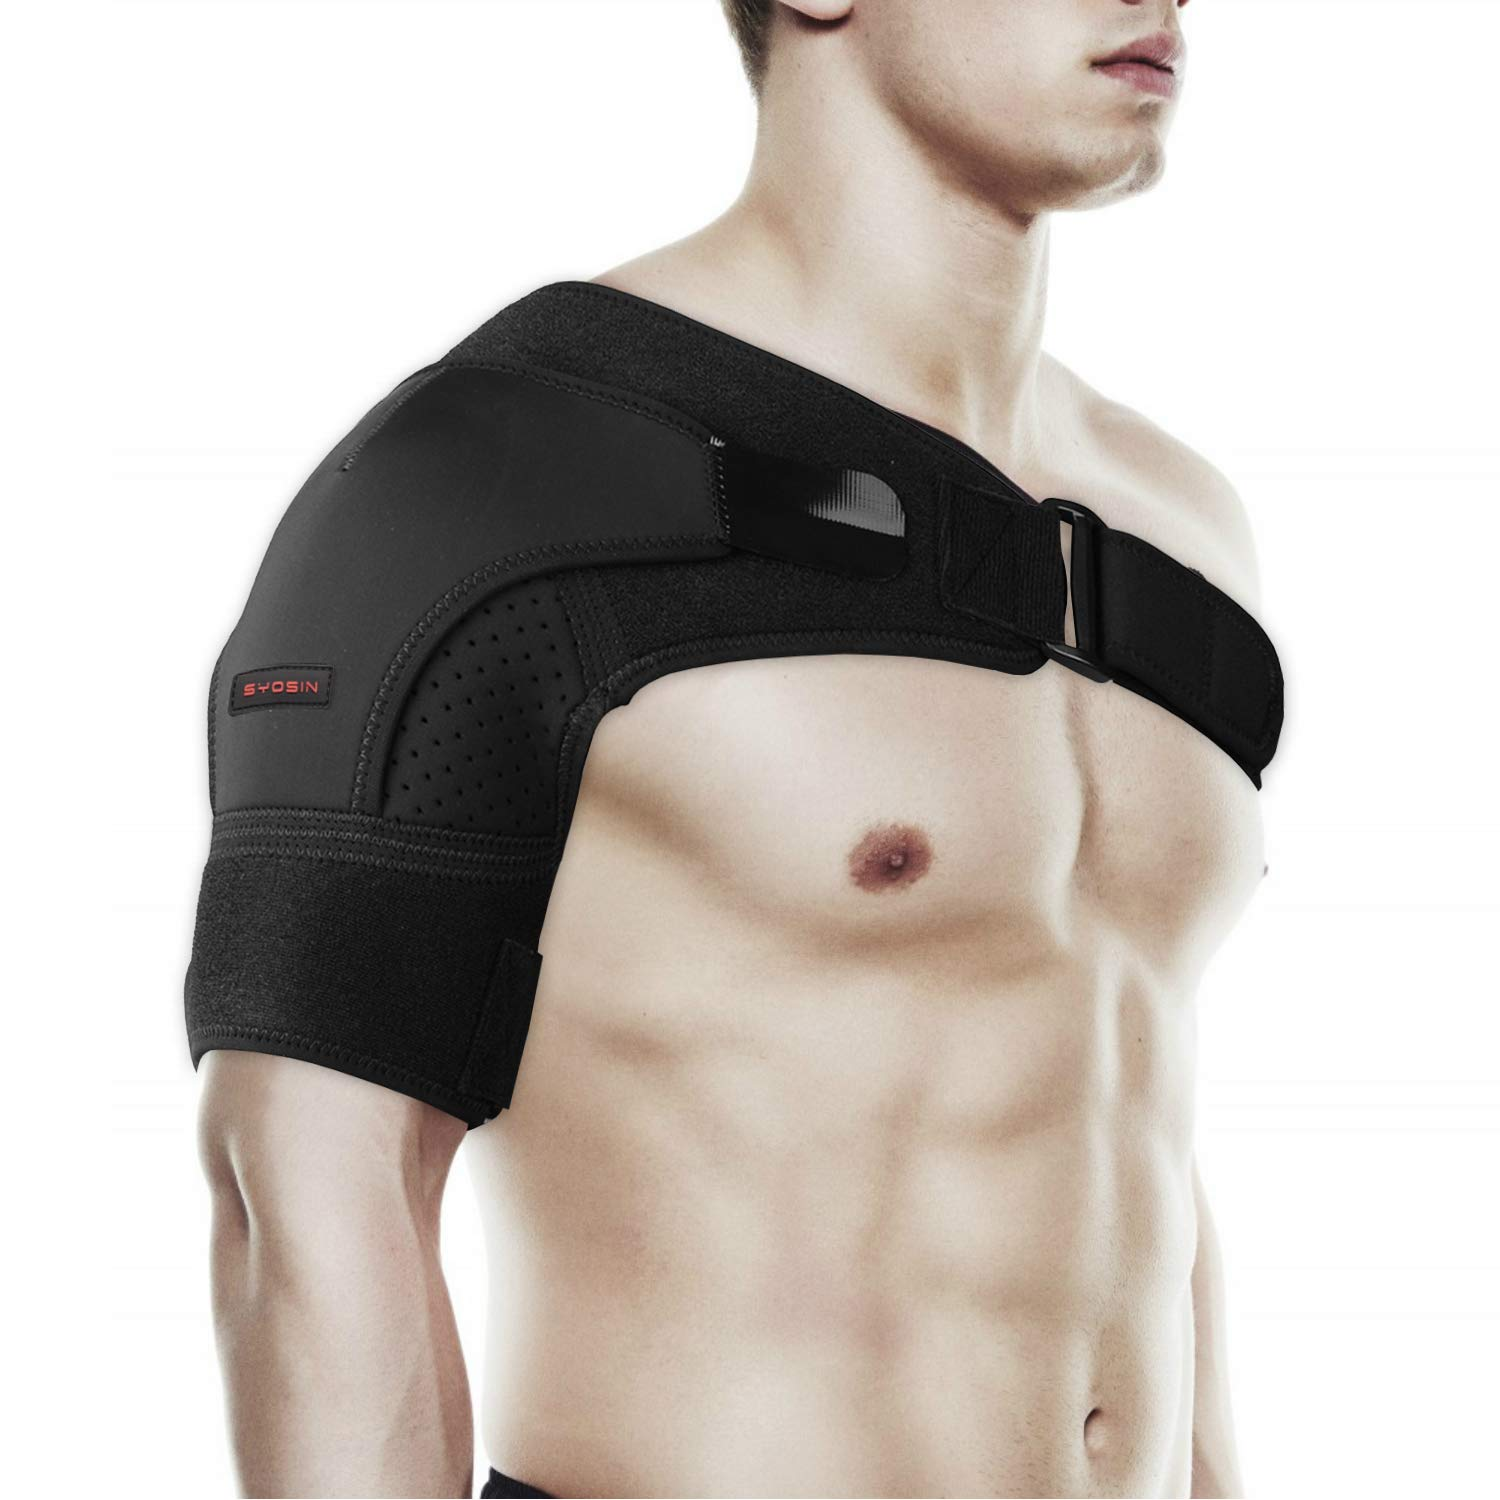 Shoulder Brace by SYOSIN - Rotator Cuff Support for Injury Prevention, Dislocated AC Joint, Labrum Tear, Tendonitis and Fracture - Shoulder Compression Sleeve with Pressure Pad for Men & Women by SYOSIN